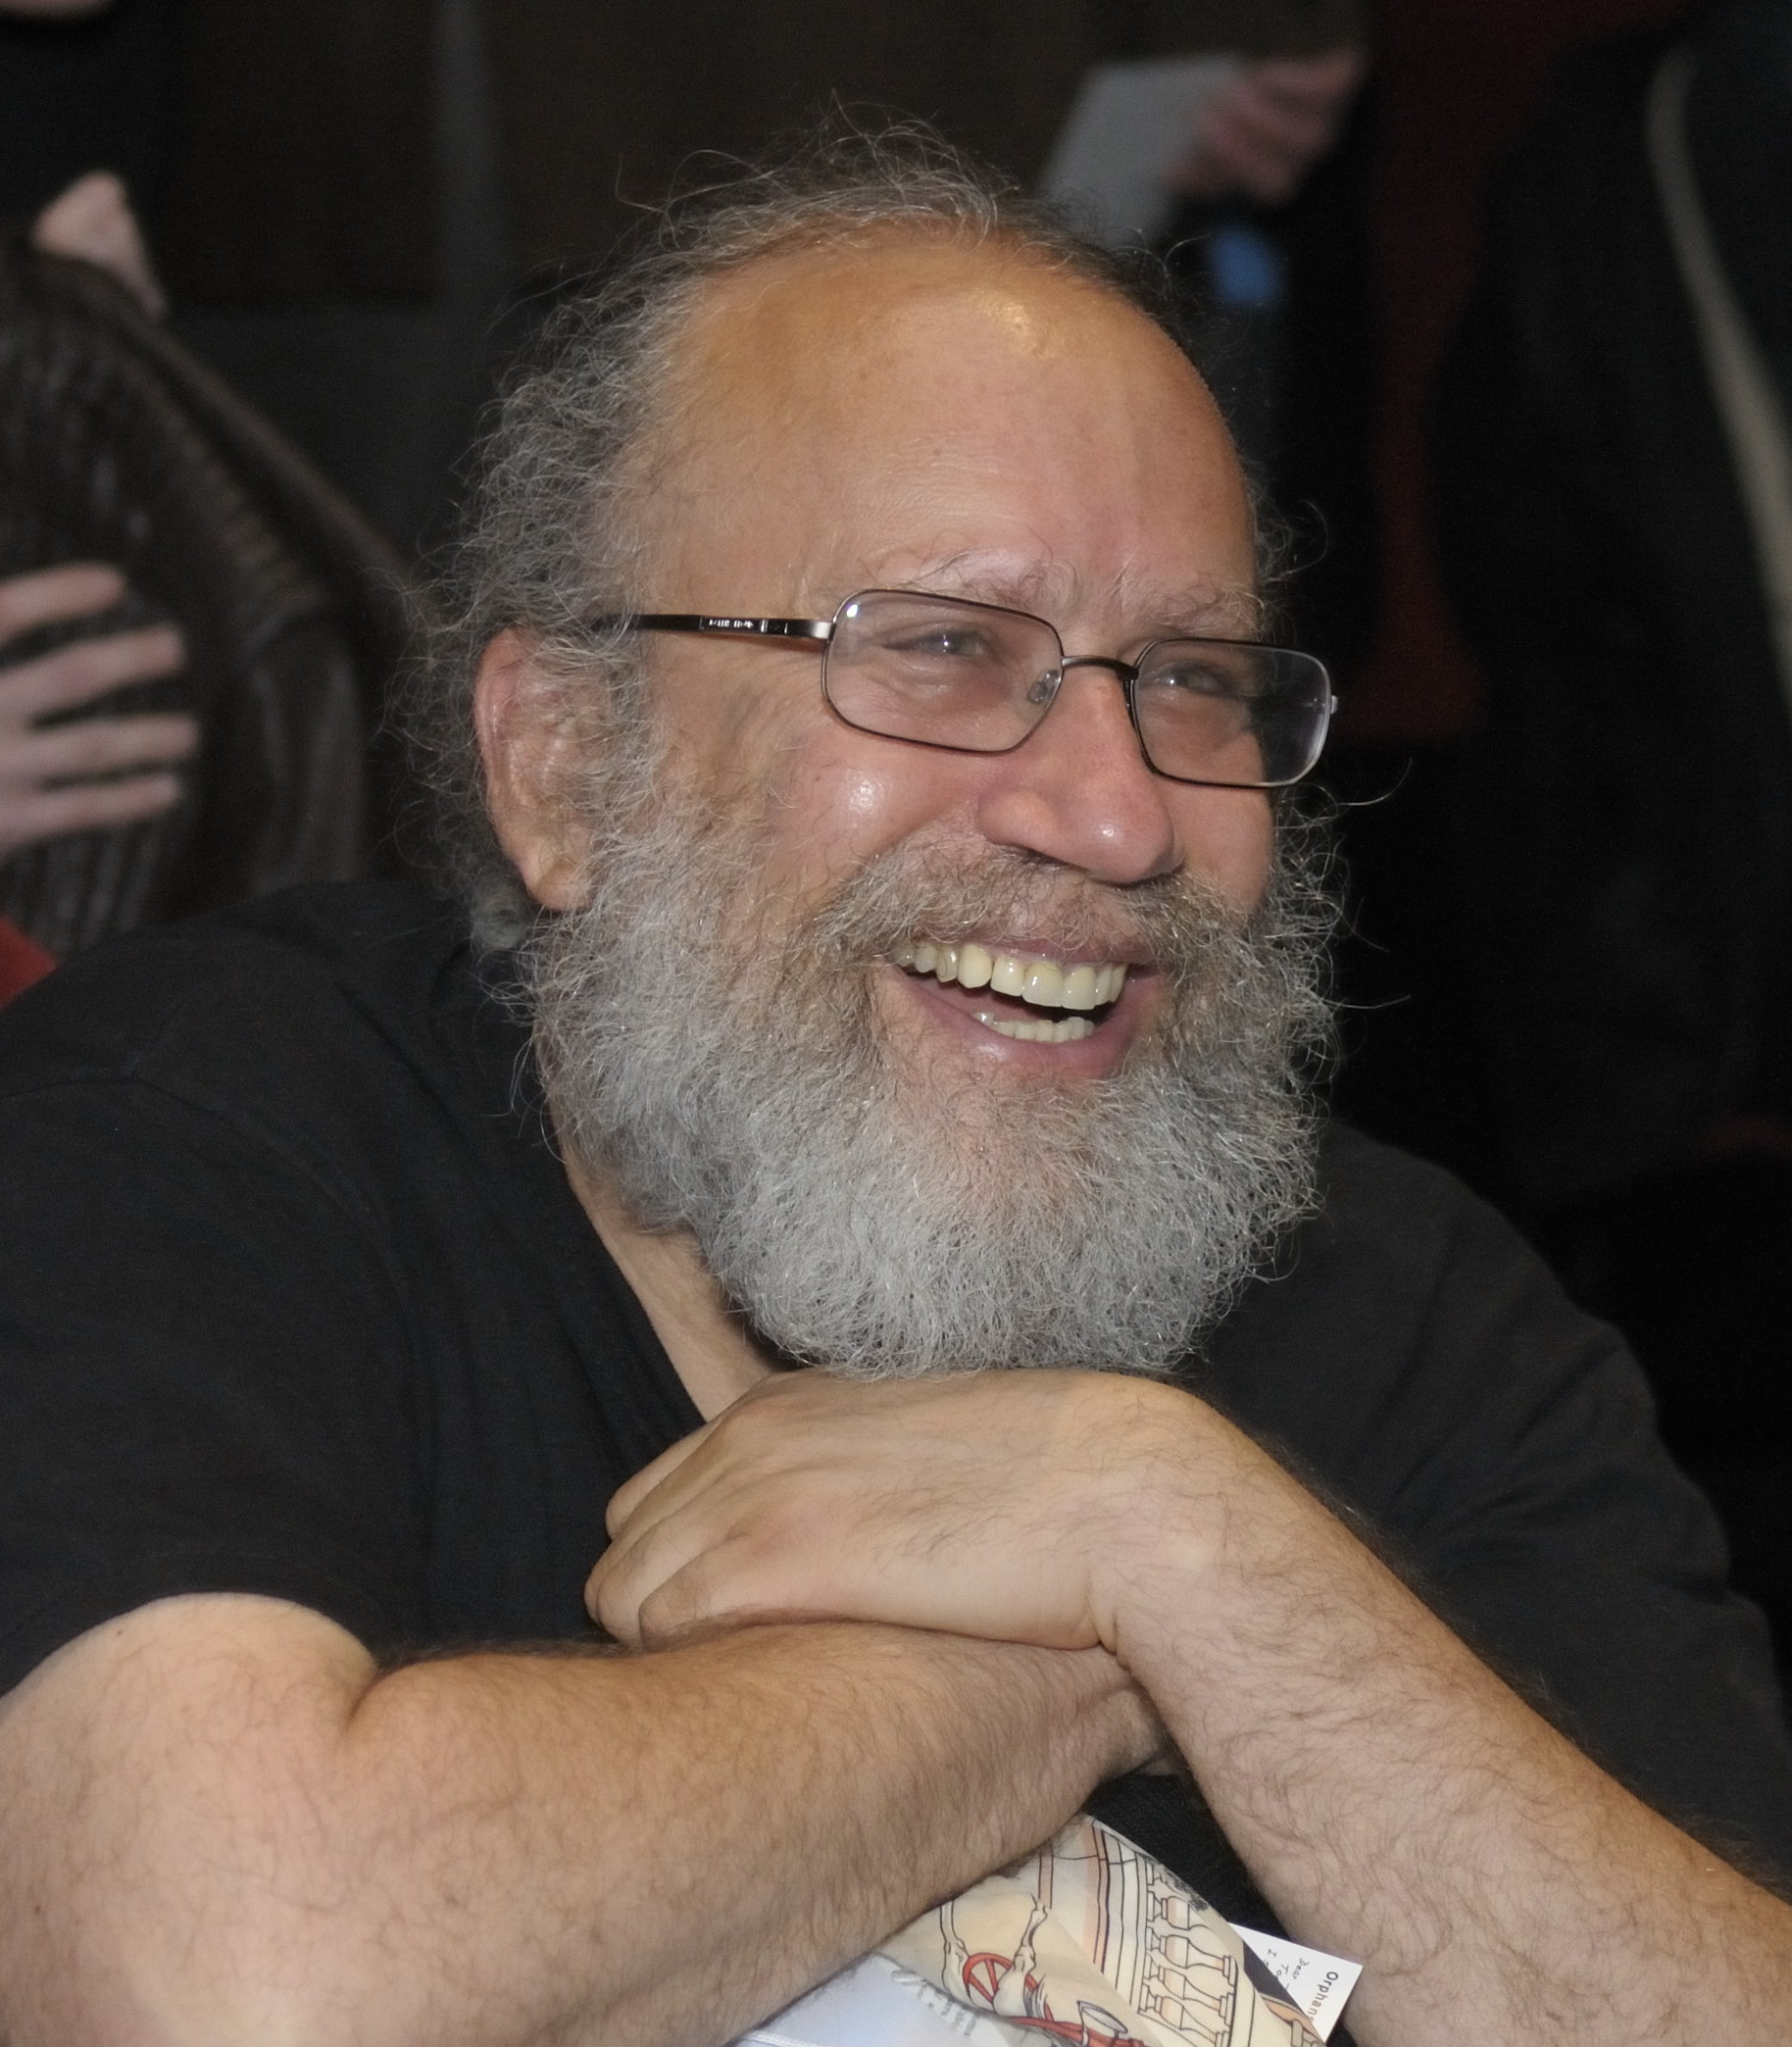 Howard Besser (photo by Dan Streible: http://flic.kr/p/7Wbqr8)